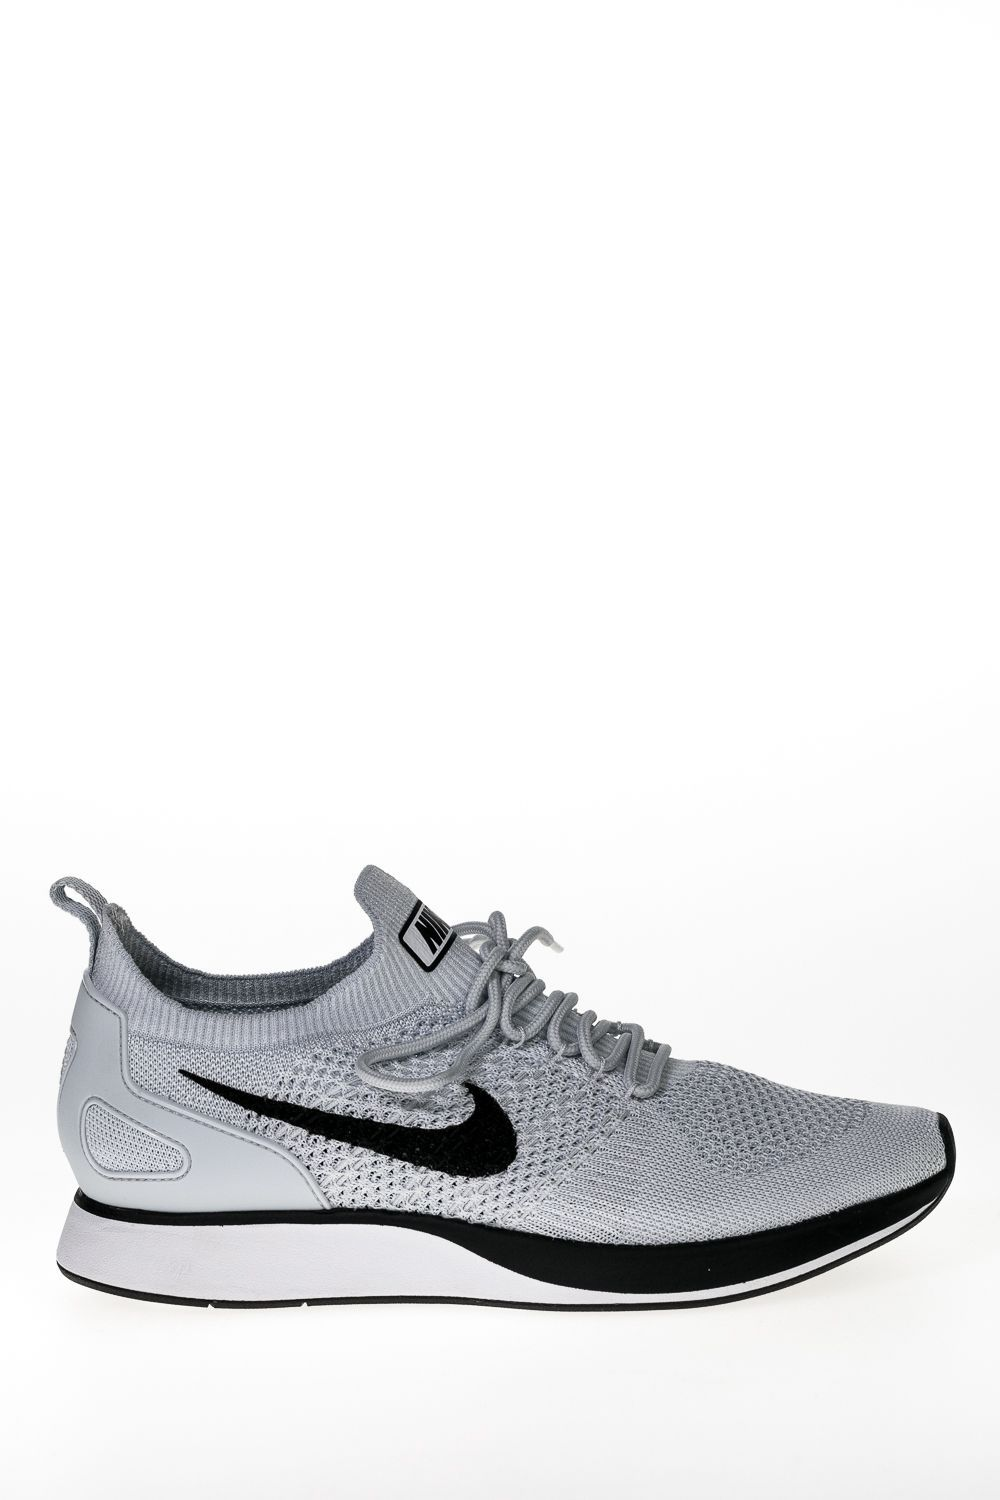 f3a33f757f3e0 NIKE AIR ZOOM MARIAH FLYKNIT RACER SNEAKERS.  nike  shoes